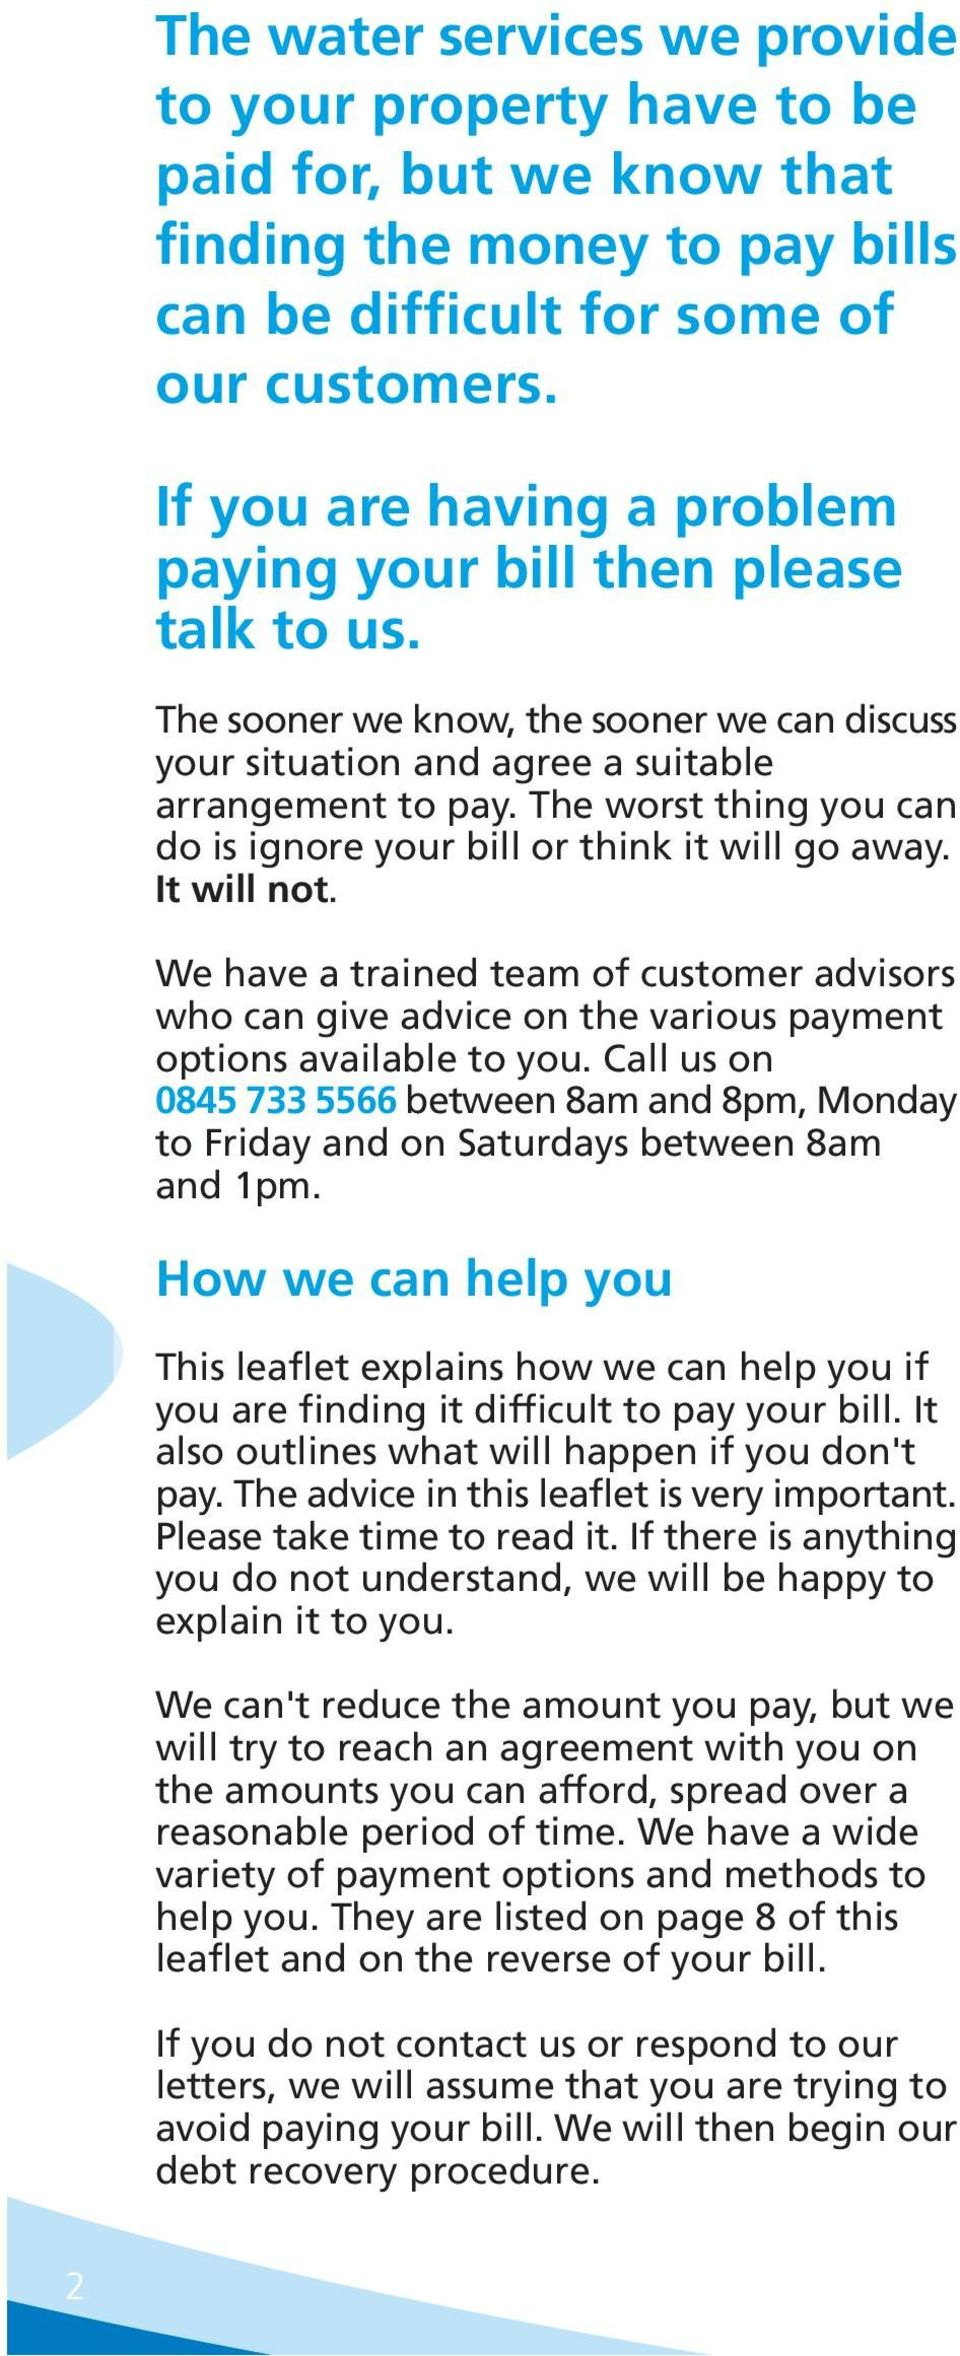 The worst thing you can do is ignore your bill or think it will go away. It will not. We have a trained team of customer advisors who can give advice on the various payment options available to you.